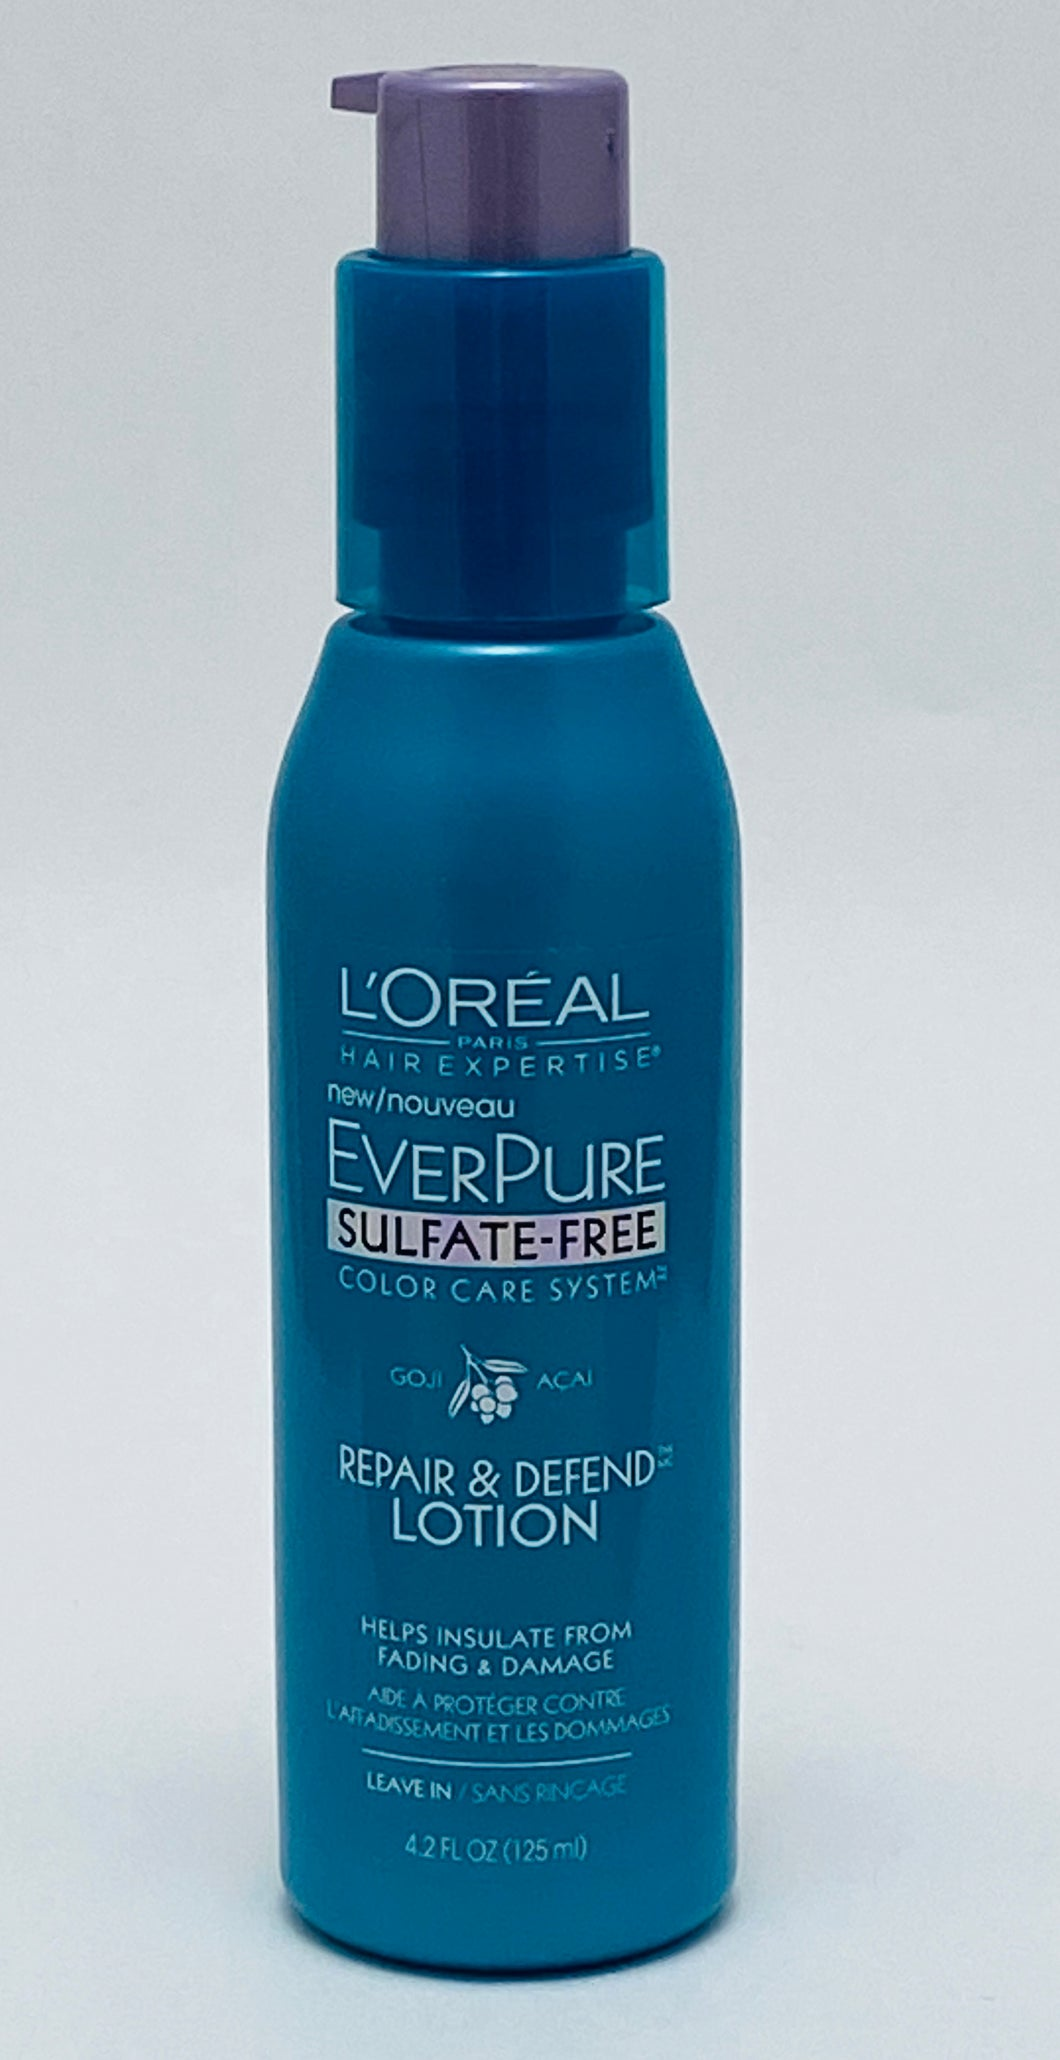 L'oreal Ever Pure Sulfate-Free Color Care System Repair & Defend Lotion - 4.2 FL OZ. (125ml)